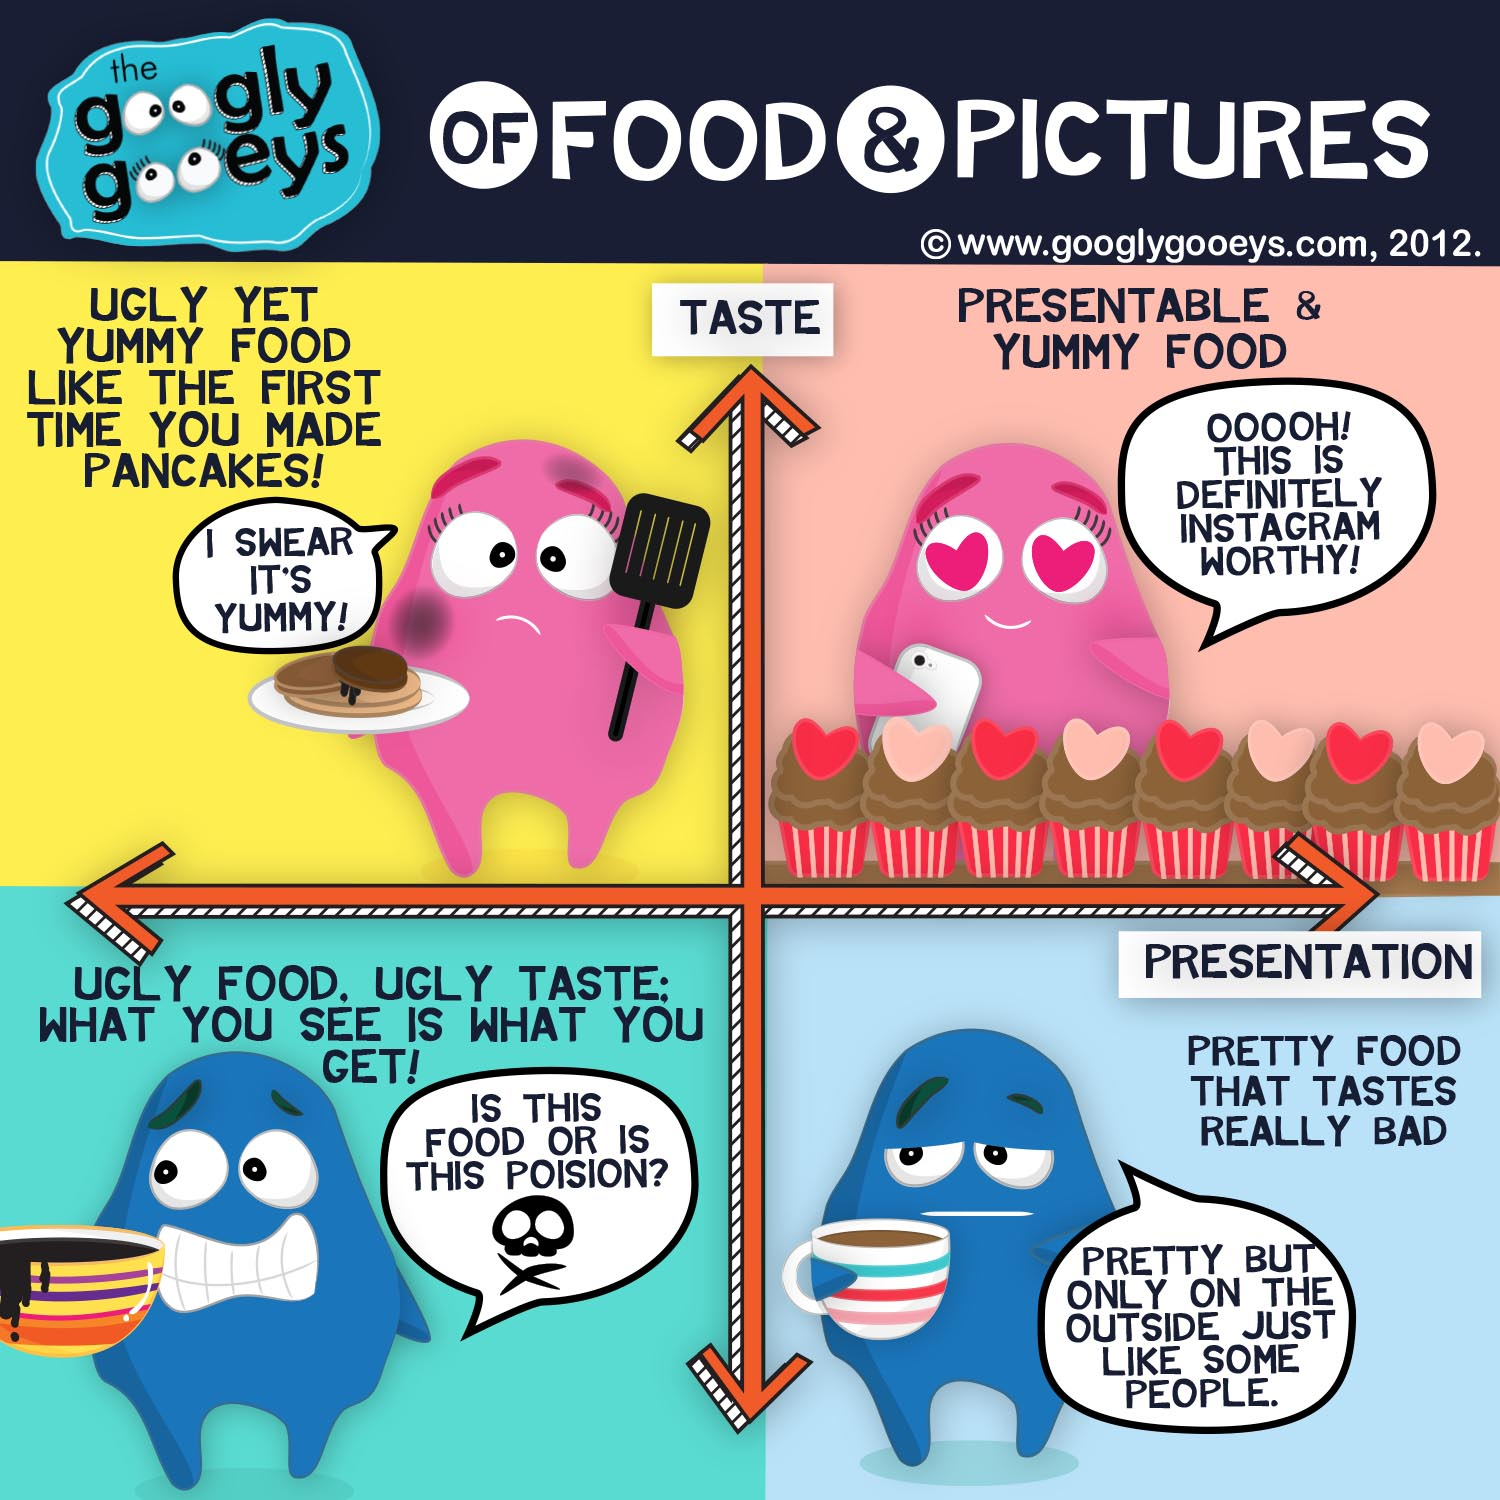 Food Pictures: Taste Versus Presentation